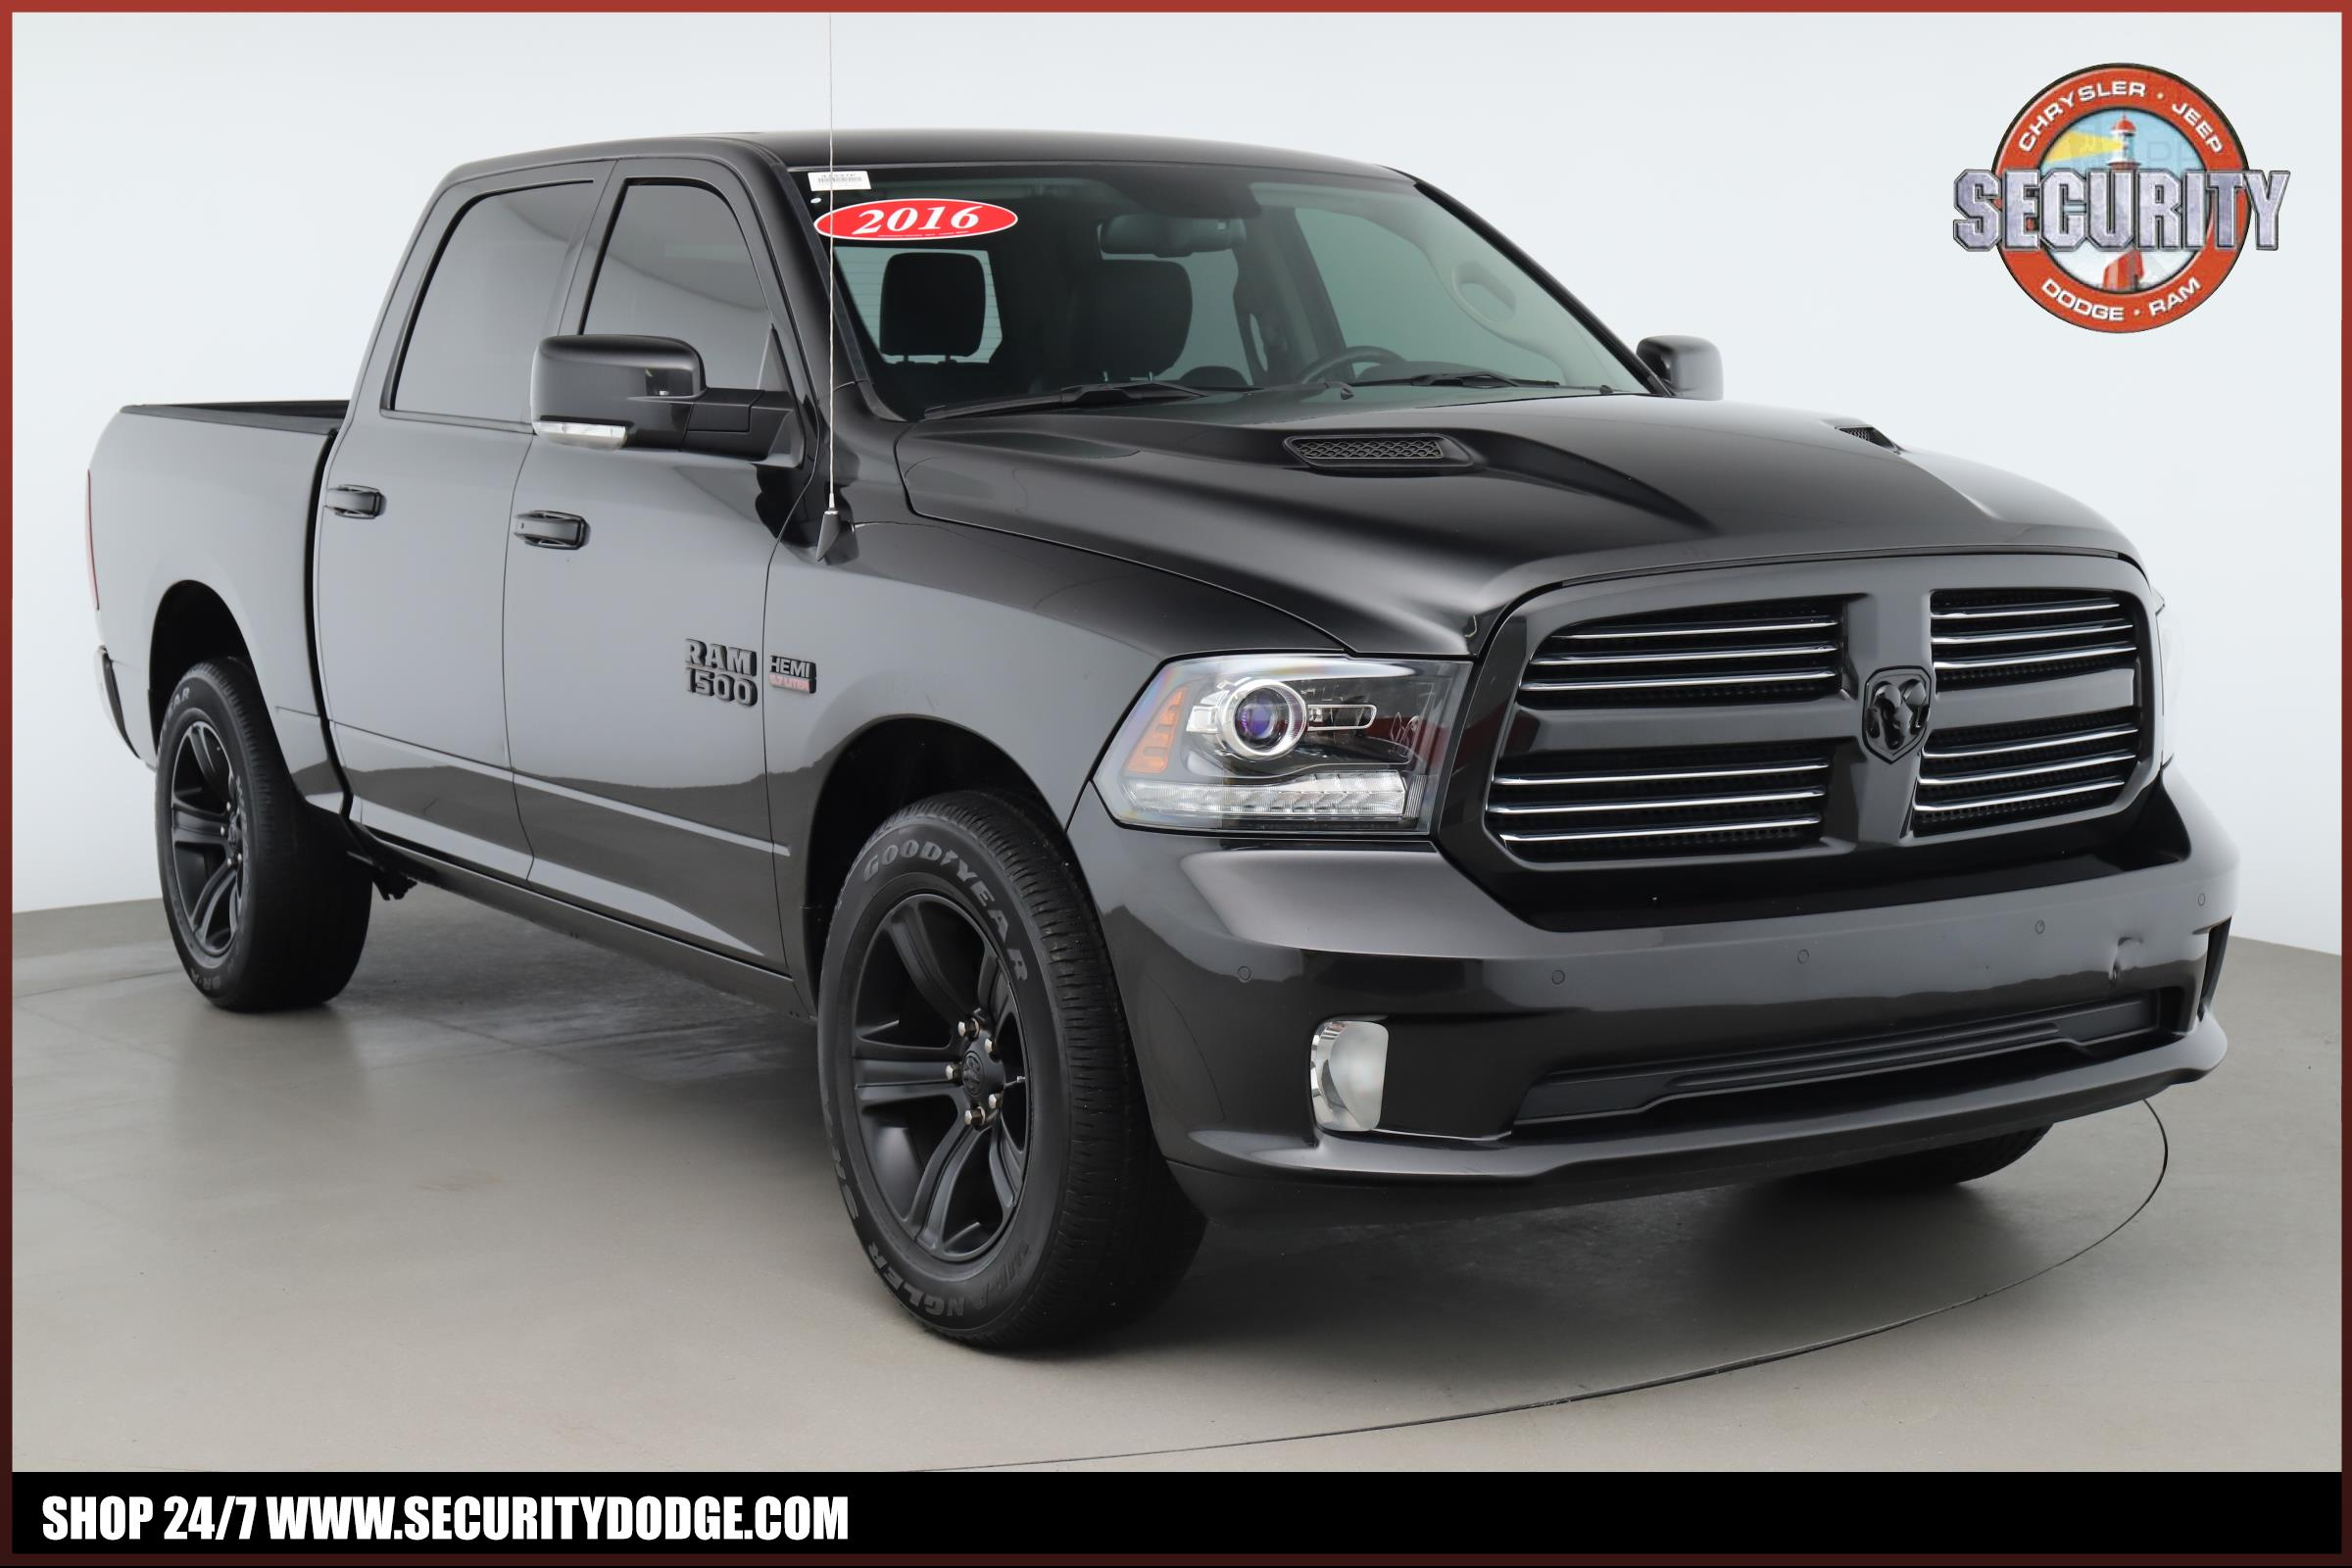 Certified Pre-Owned 2016 Ram 1500 Sport Crew Cab 4X4